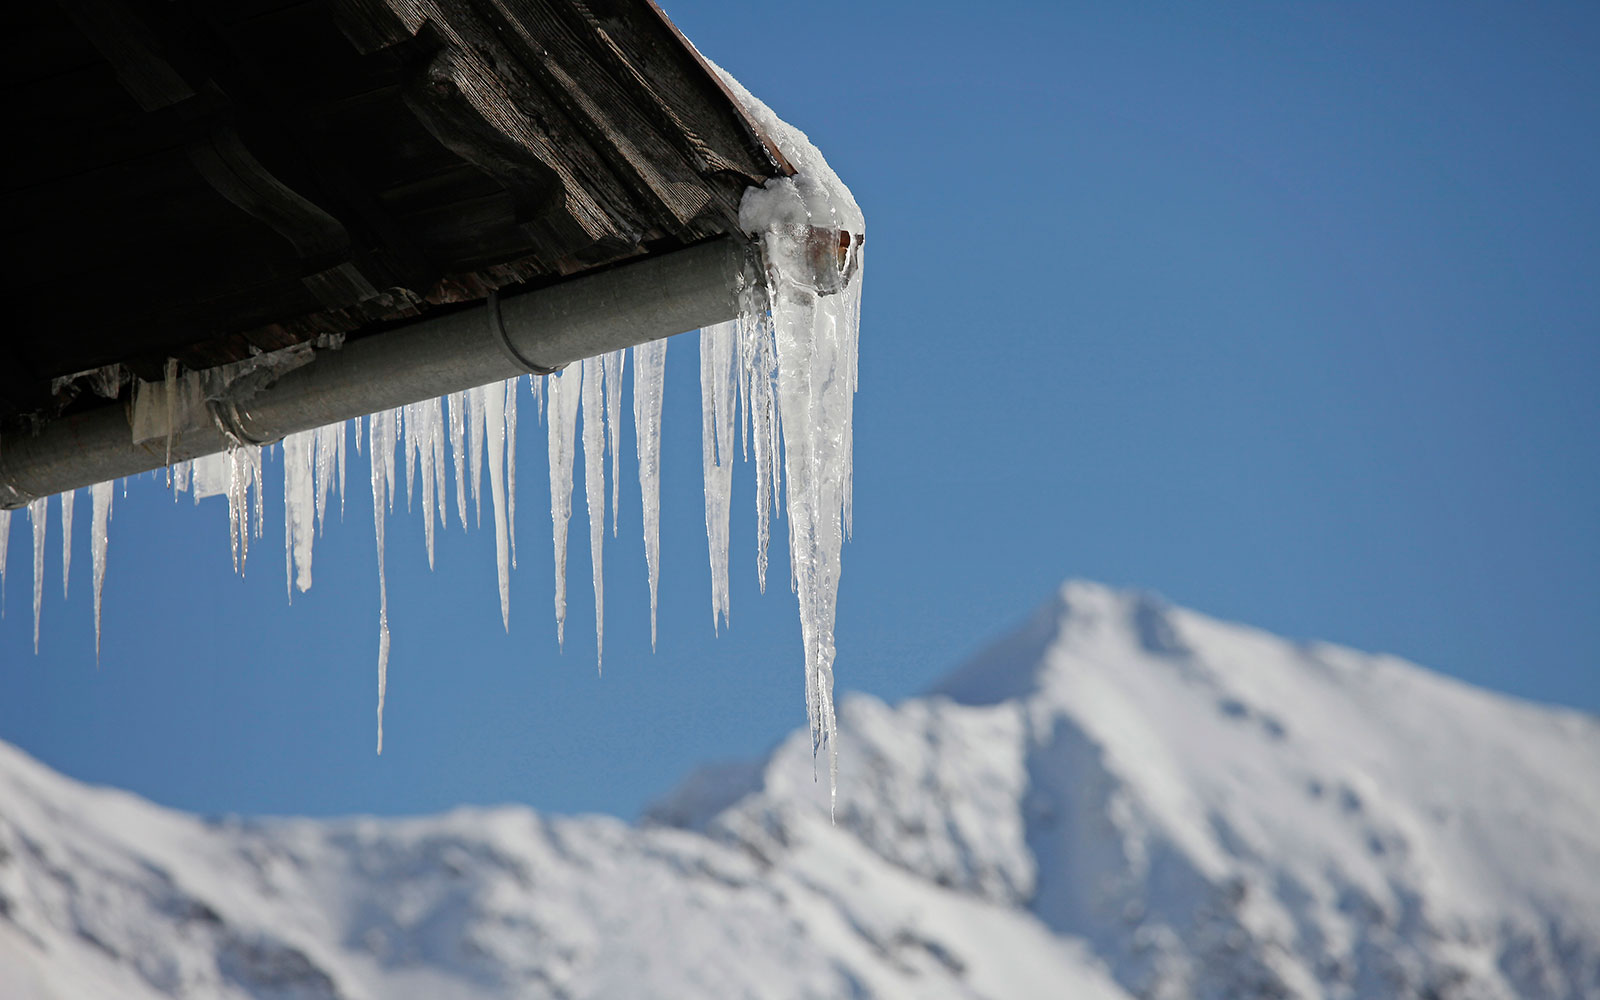 Frozen House Water Pipes Winter